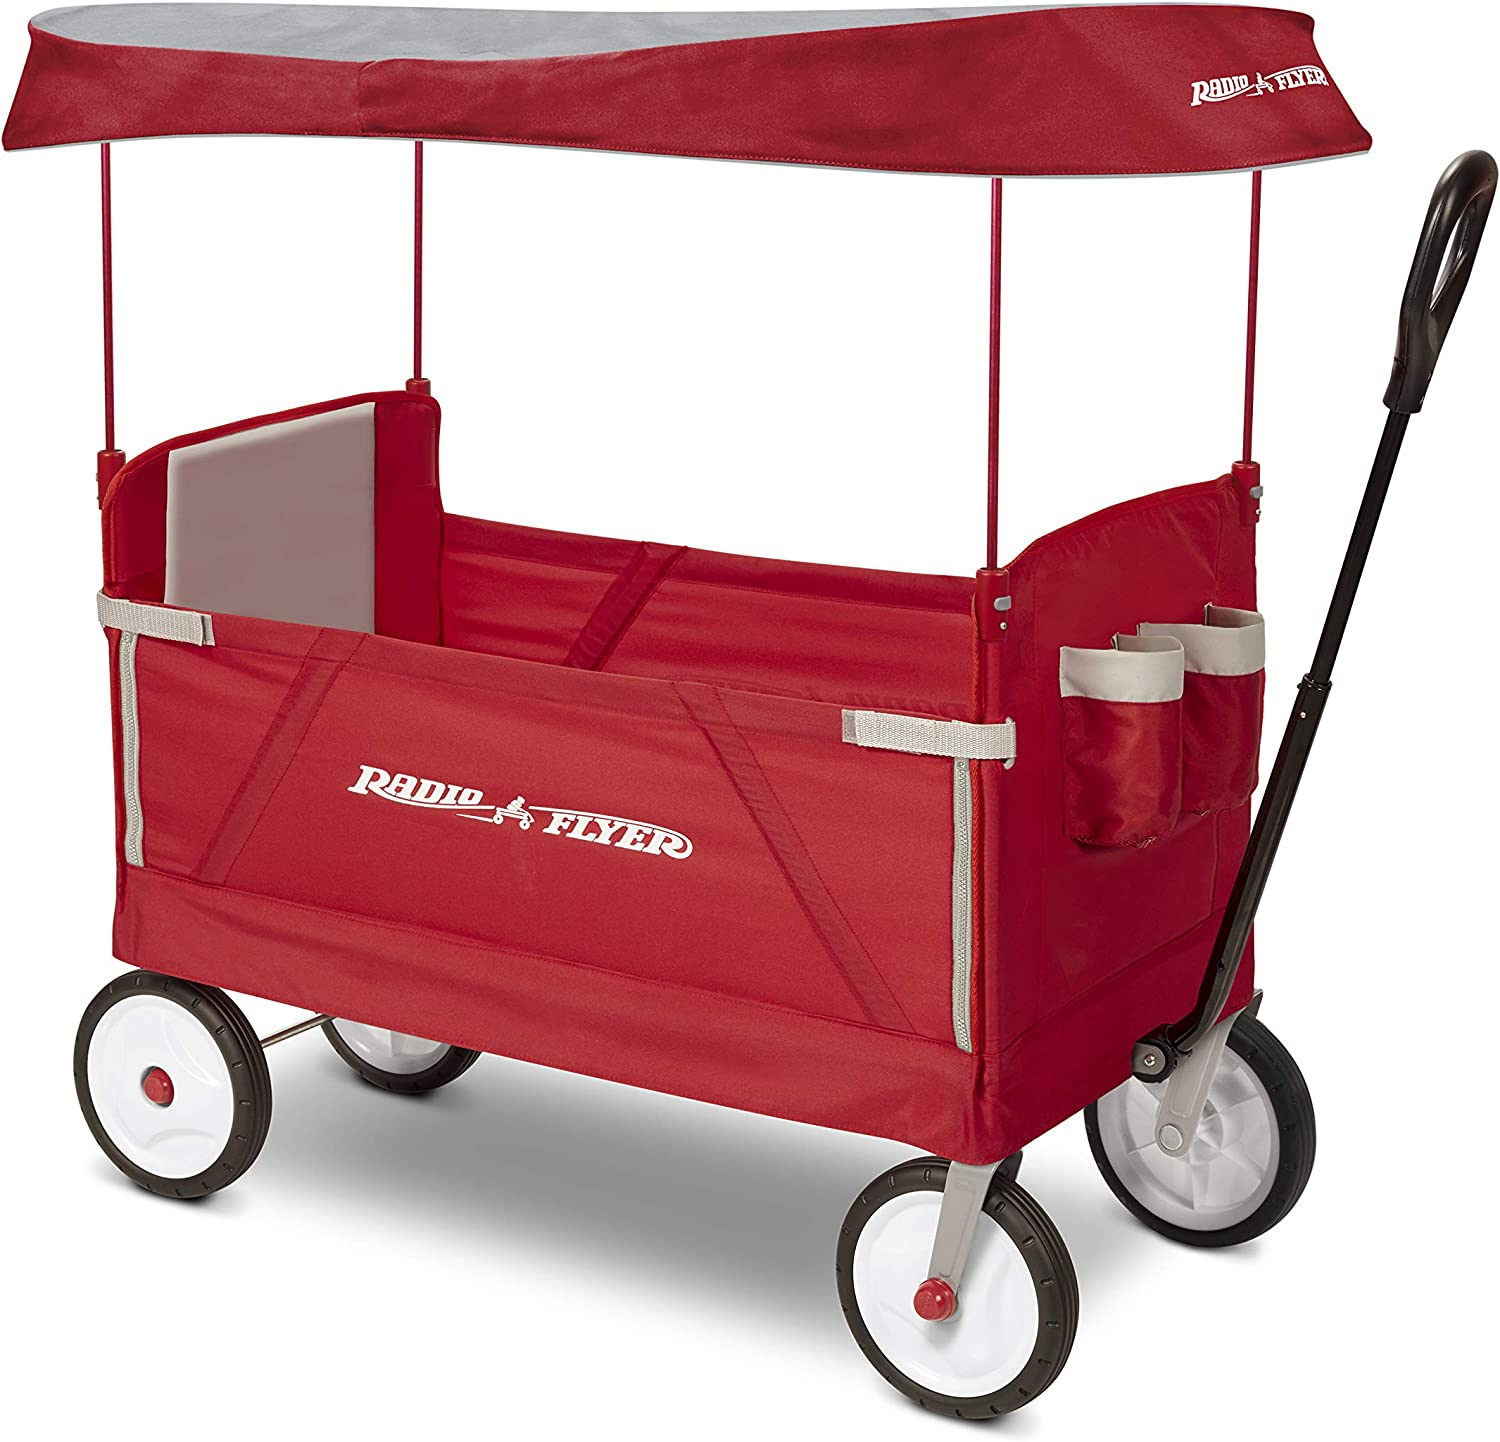 Top 9 Best Wagons For Kids & Babies In 2020 7